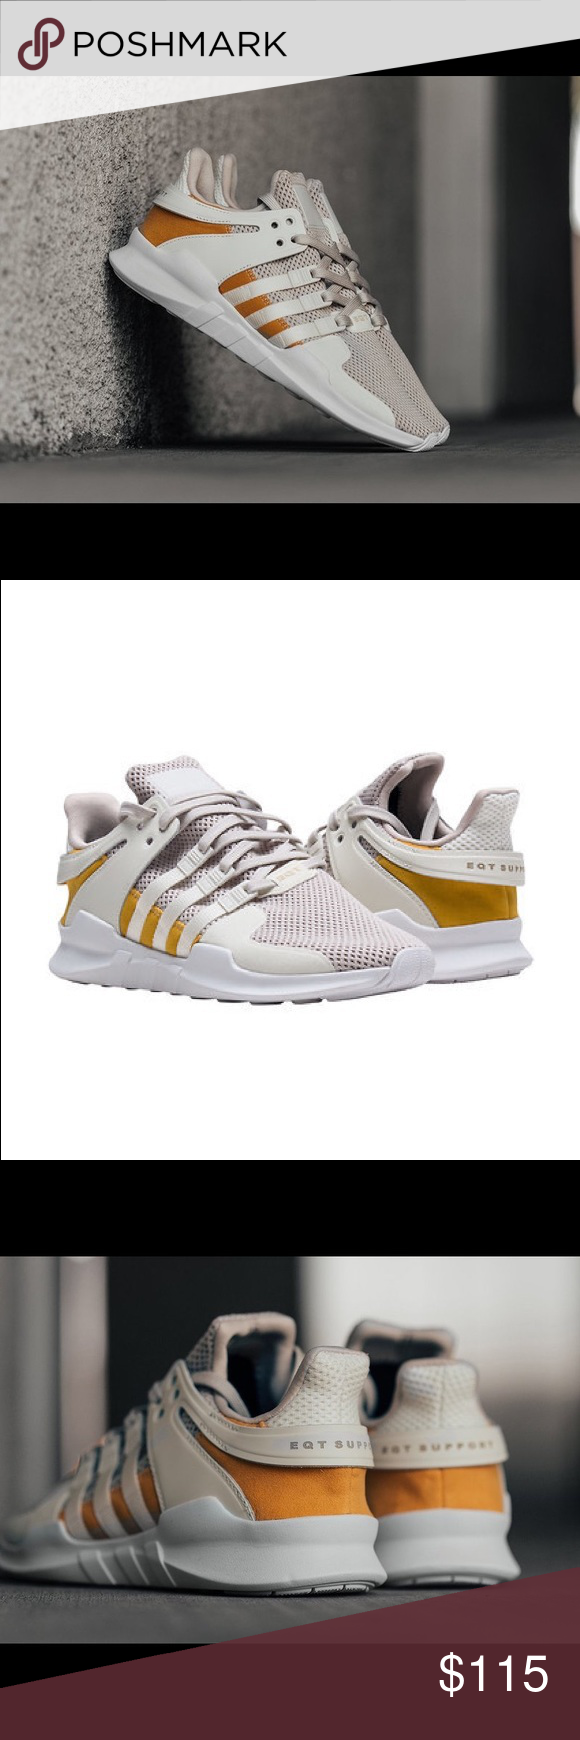 online store a06a5 70f5d Adidas EQT Support ADV Off-WhiteTactile Yellow Brand new! No box Adidas